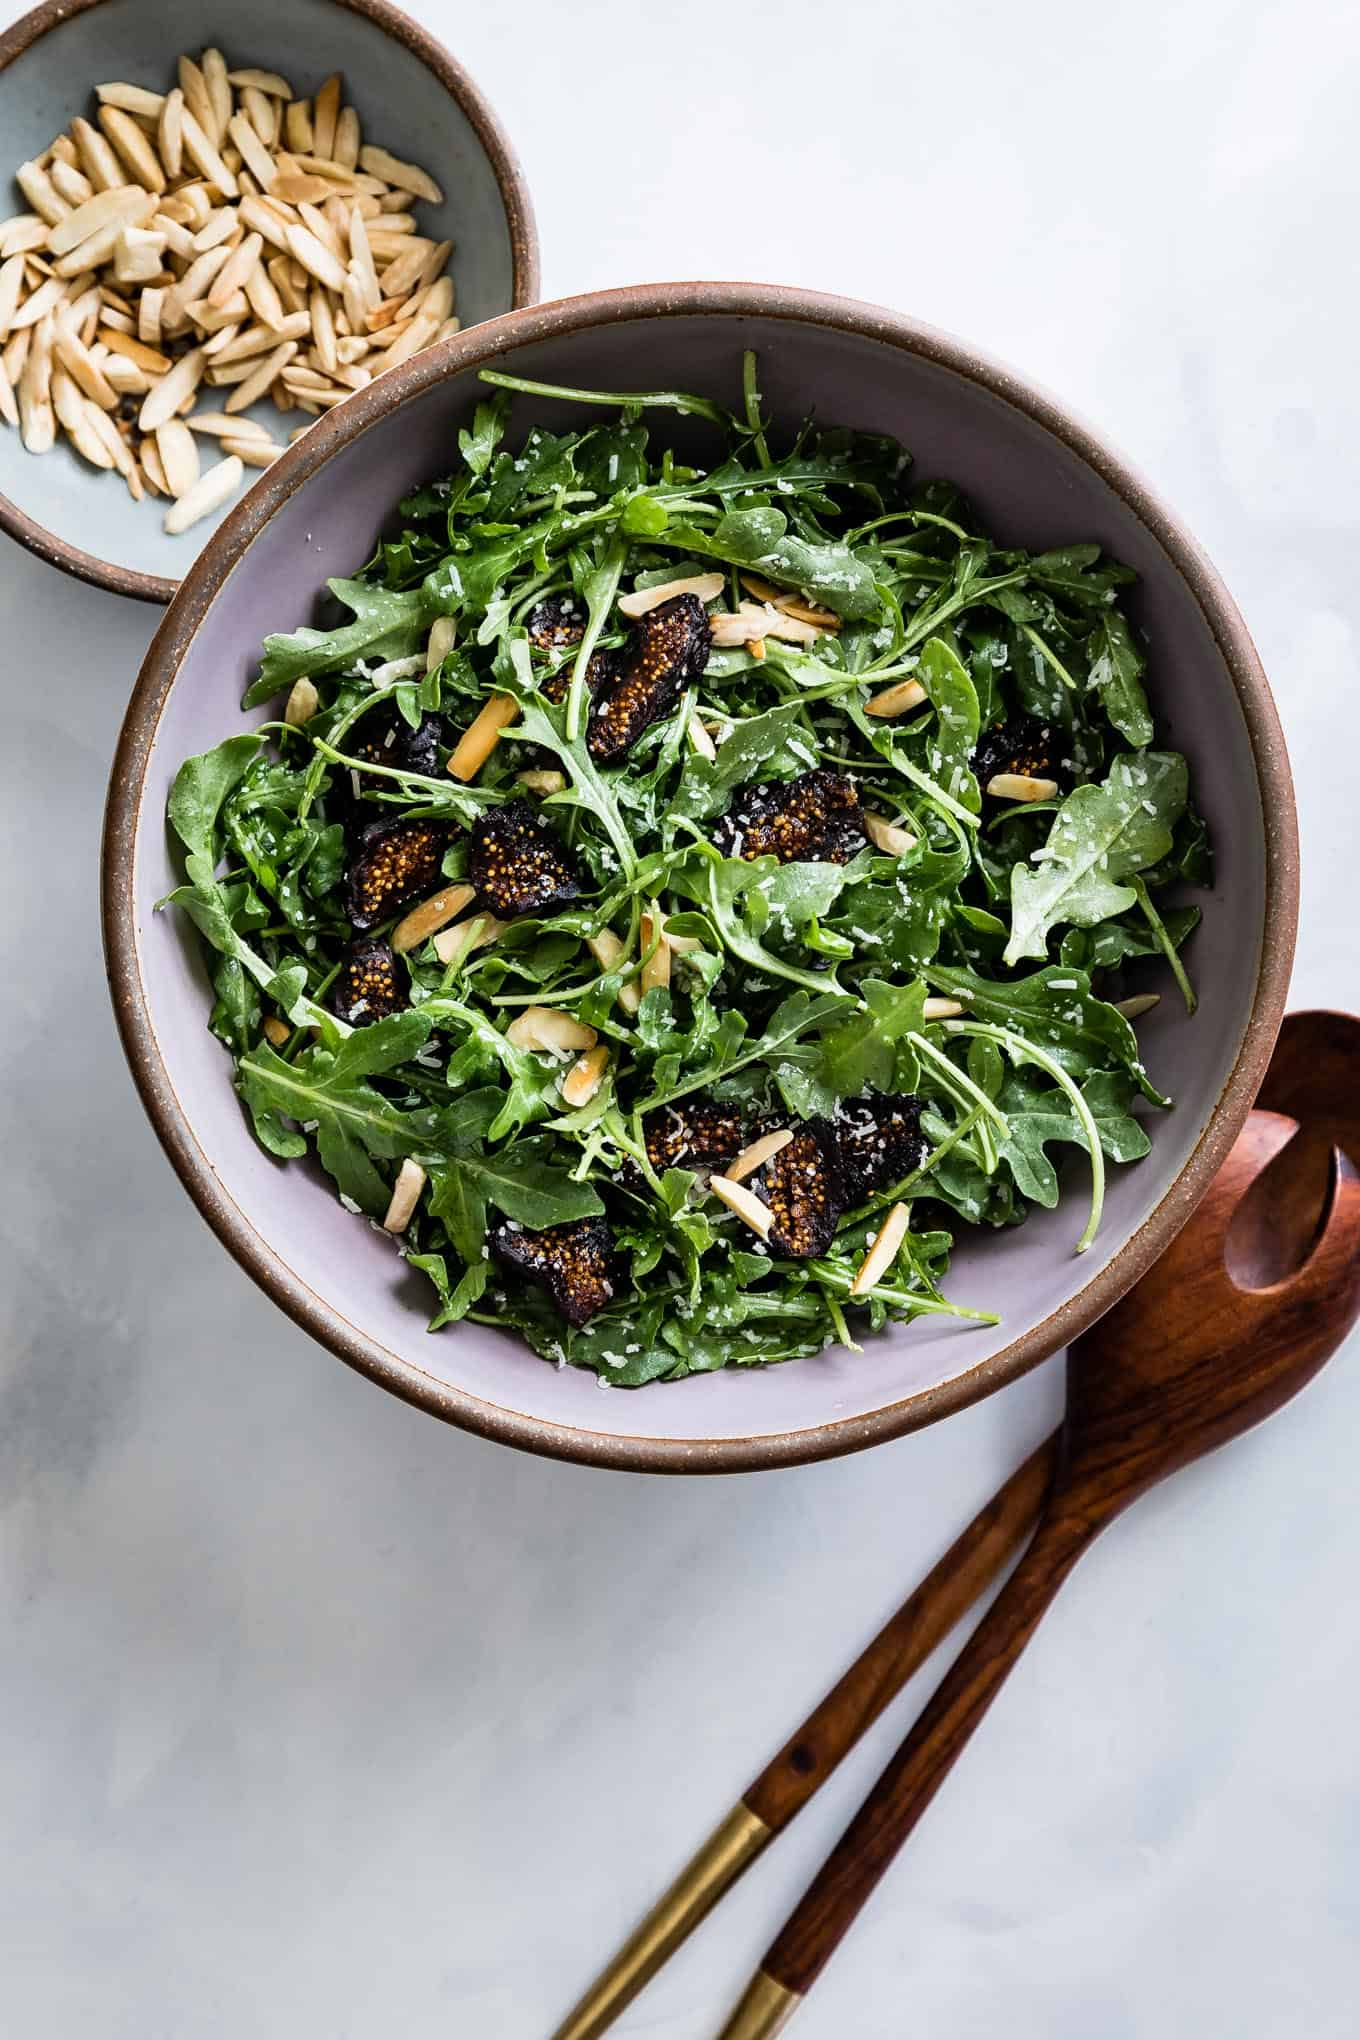 Lemon Arugula Salad with Figs